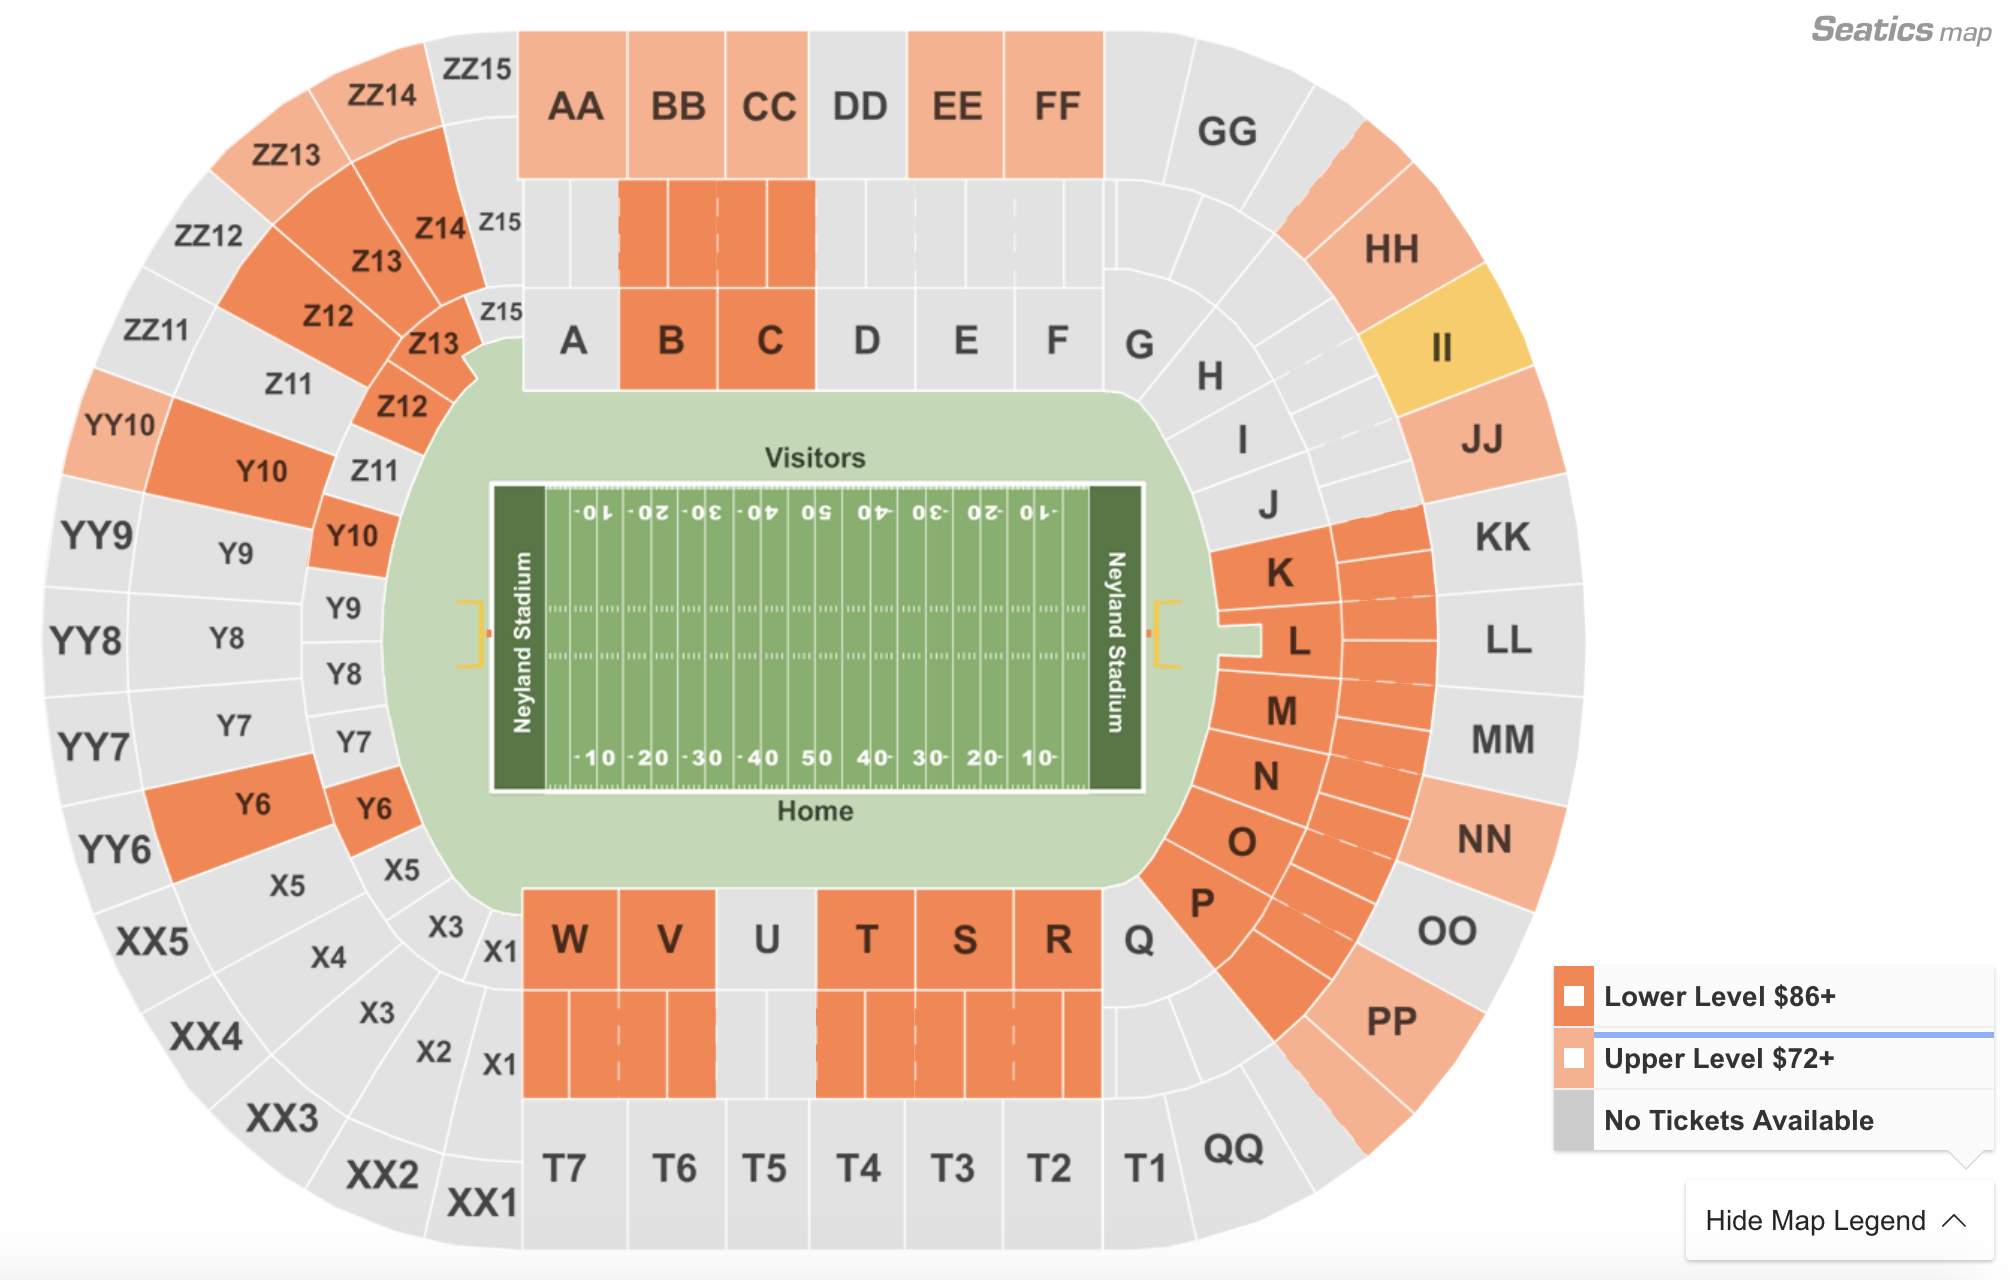 Where To Find The Cheapest Tennessee Vs. Georgia Football Tickets At Neyland Stadium On 10/5/19